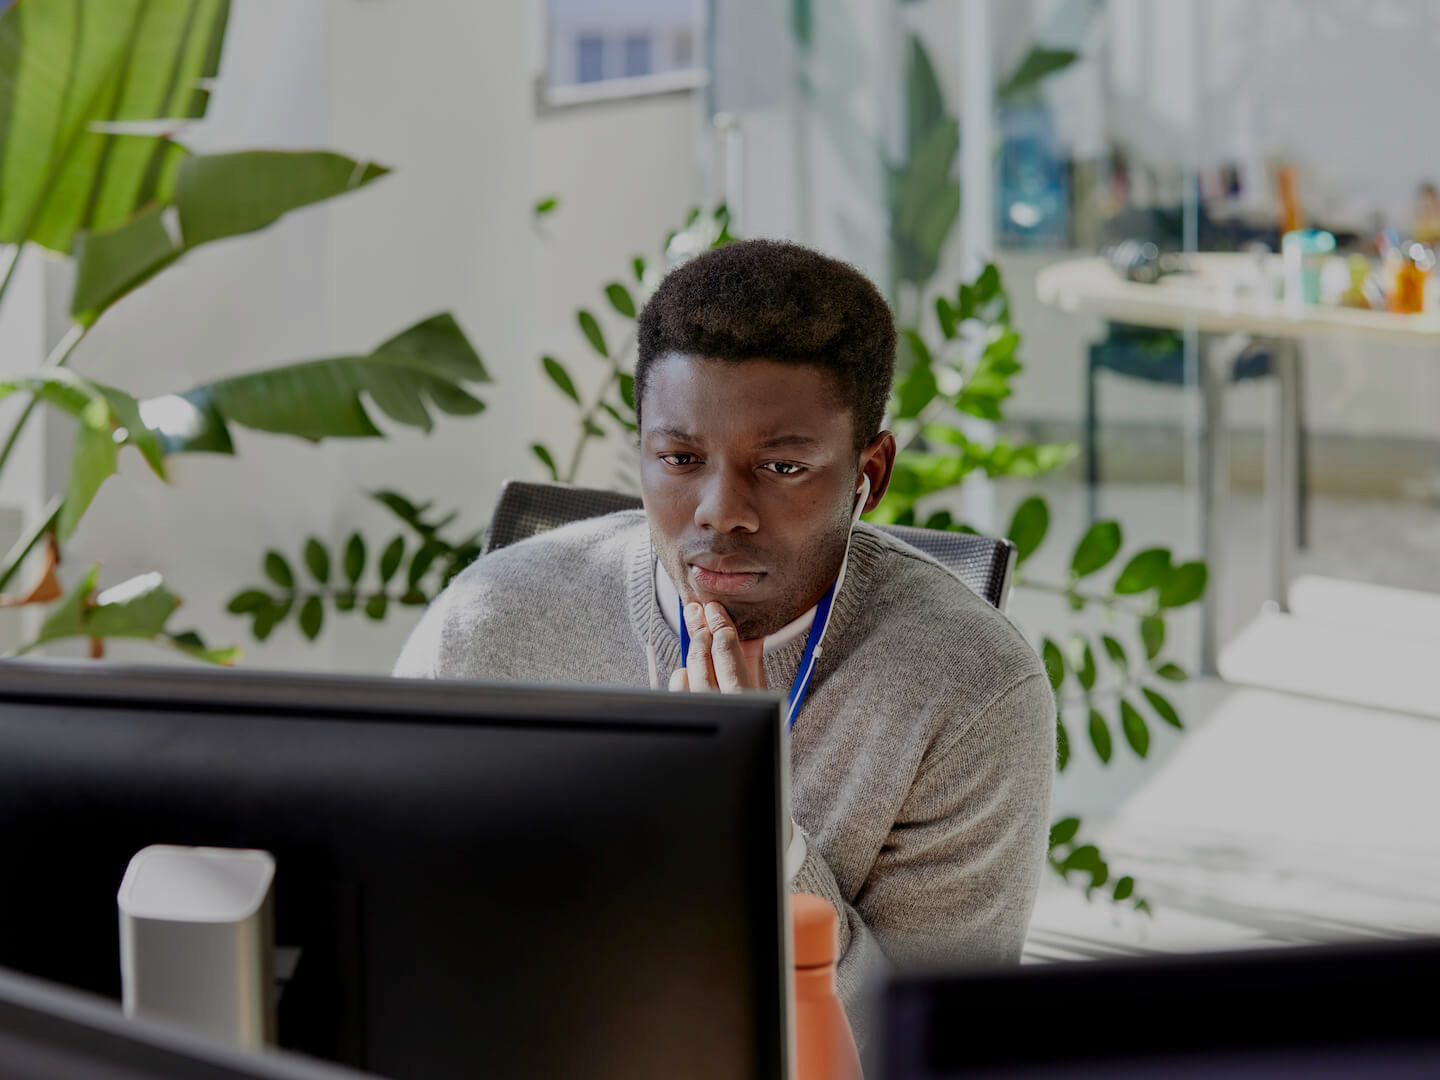 Man working at desktop with plants in the background